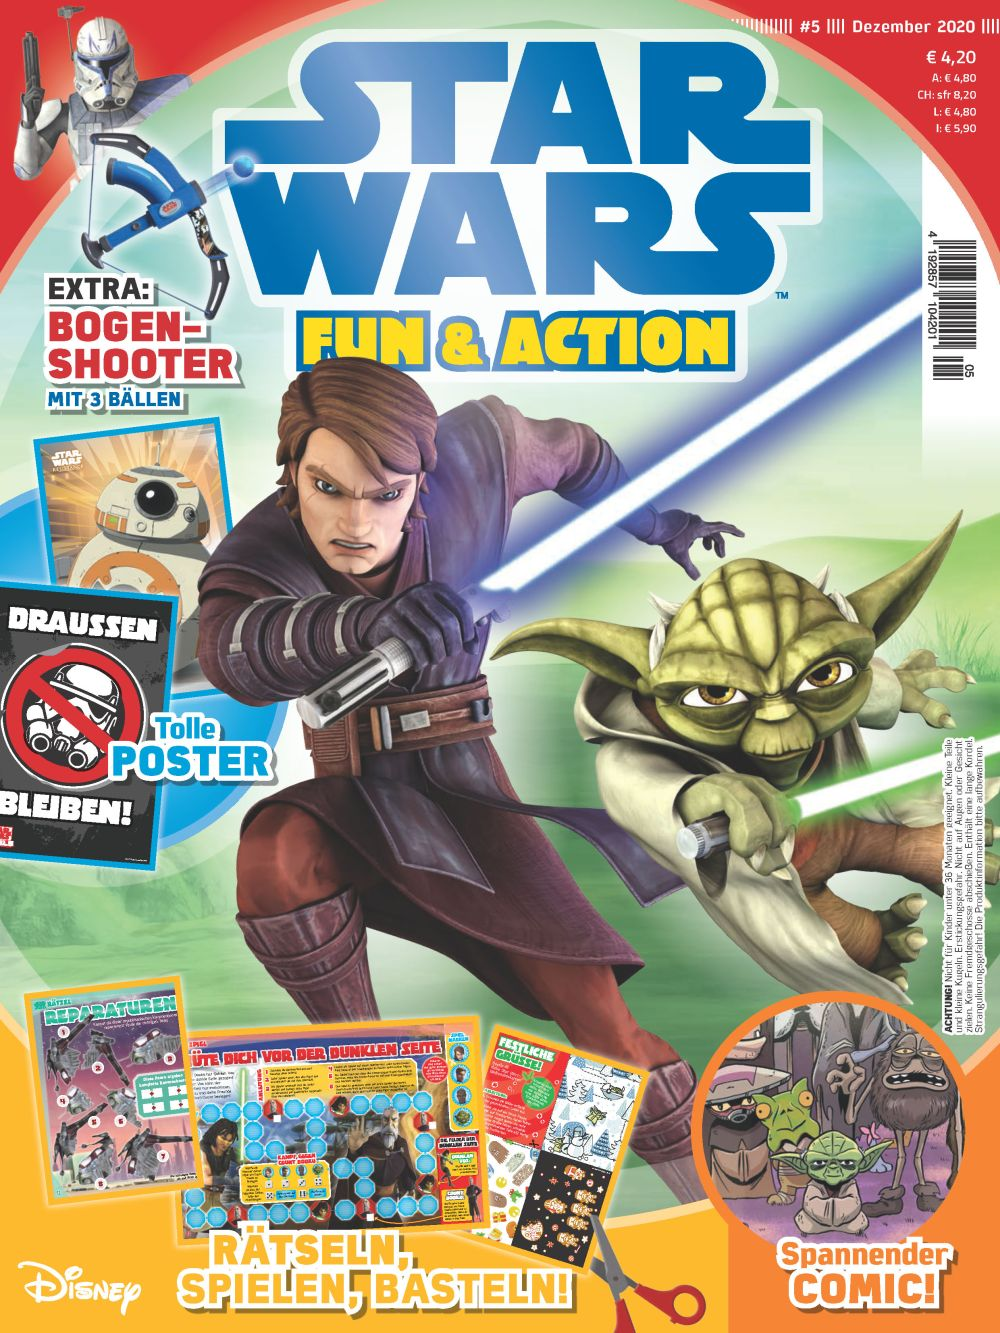 Star Wars Fun & Action #5 (25.11.2020)